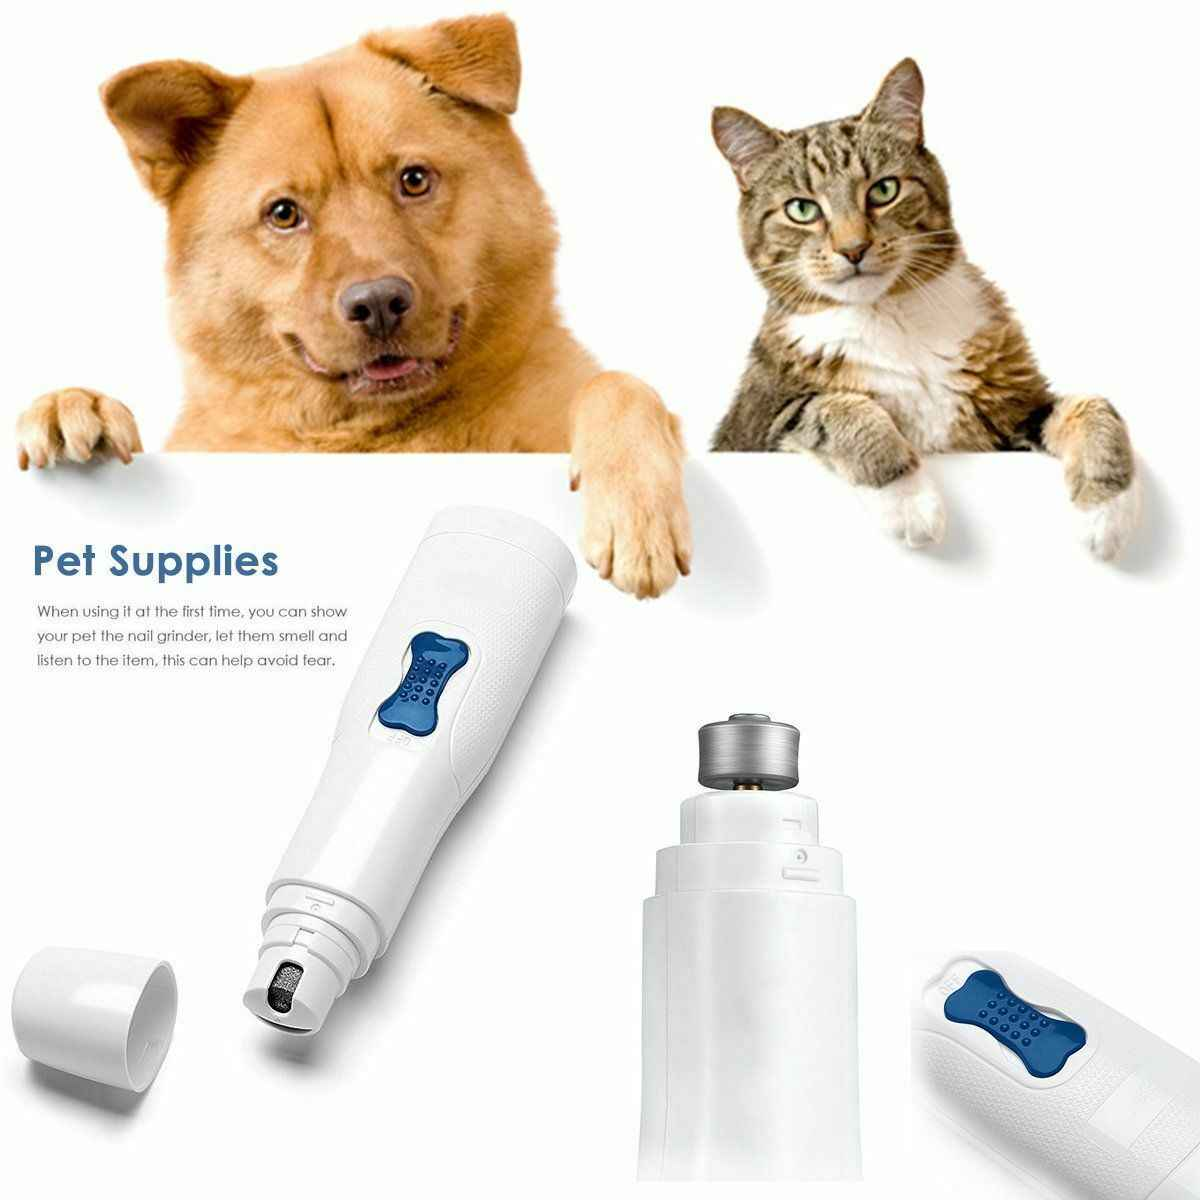 Elettrico Pet Nail Grinder Chiodo Claw Grooming Trimmer Gatto Del Cane Zampe Tagliatore di Strumenti di Kit nail grinder pet forniture pet nail trimmer